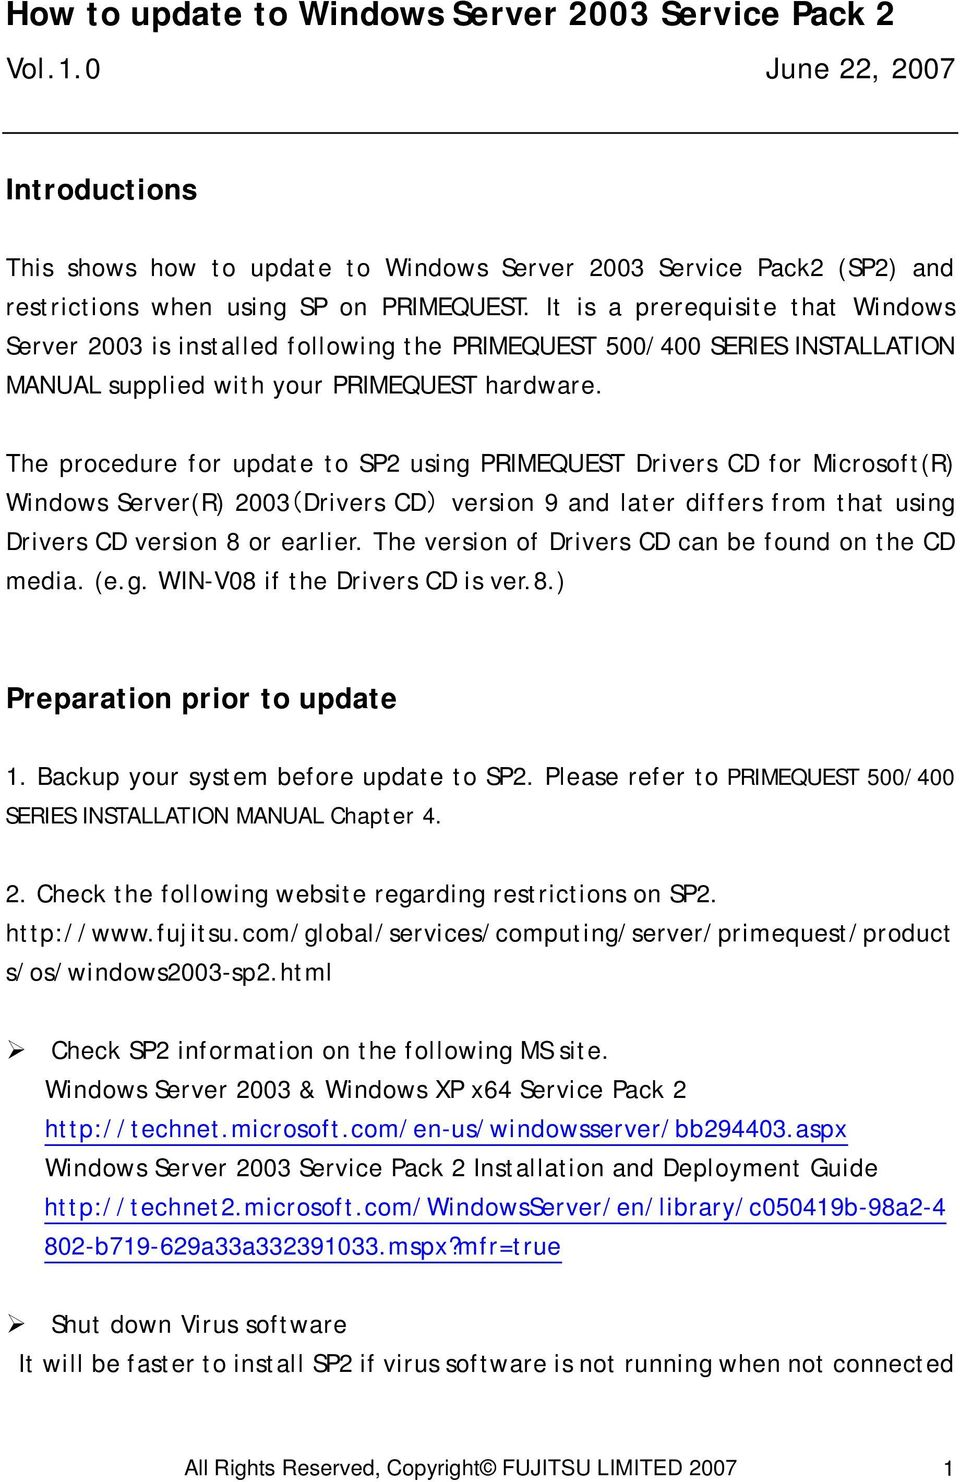 It is a prerequisite that Windows Server 2003 is installed following the PRIMEQUEST 500/400 SERIES INSTALLATION MANUAL supplied with your PRIMEQUEST hardware.